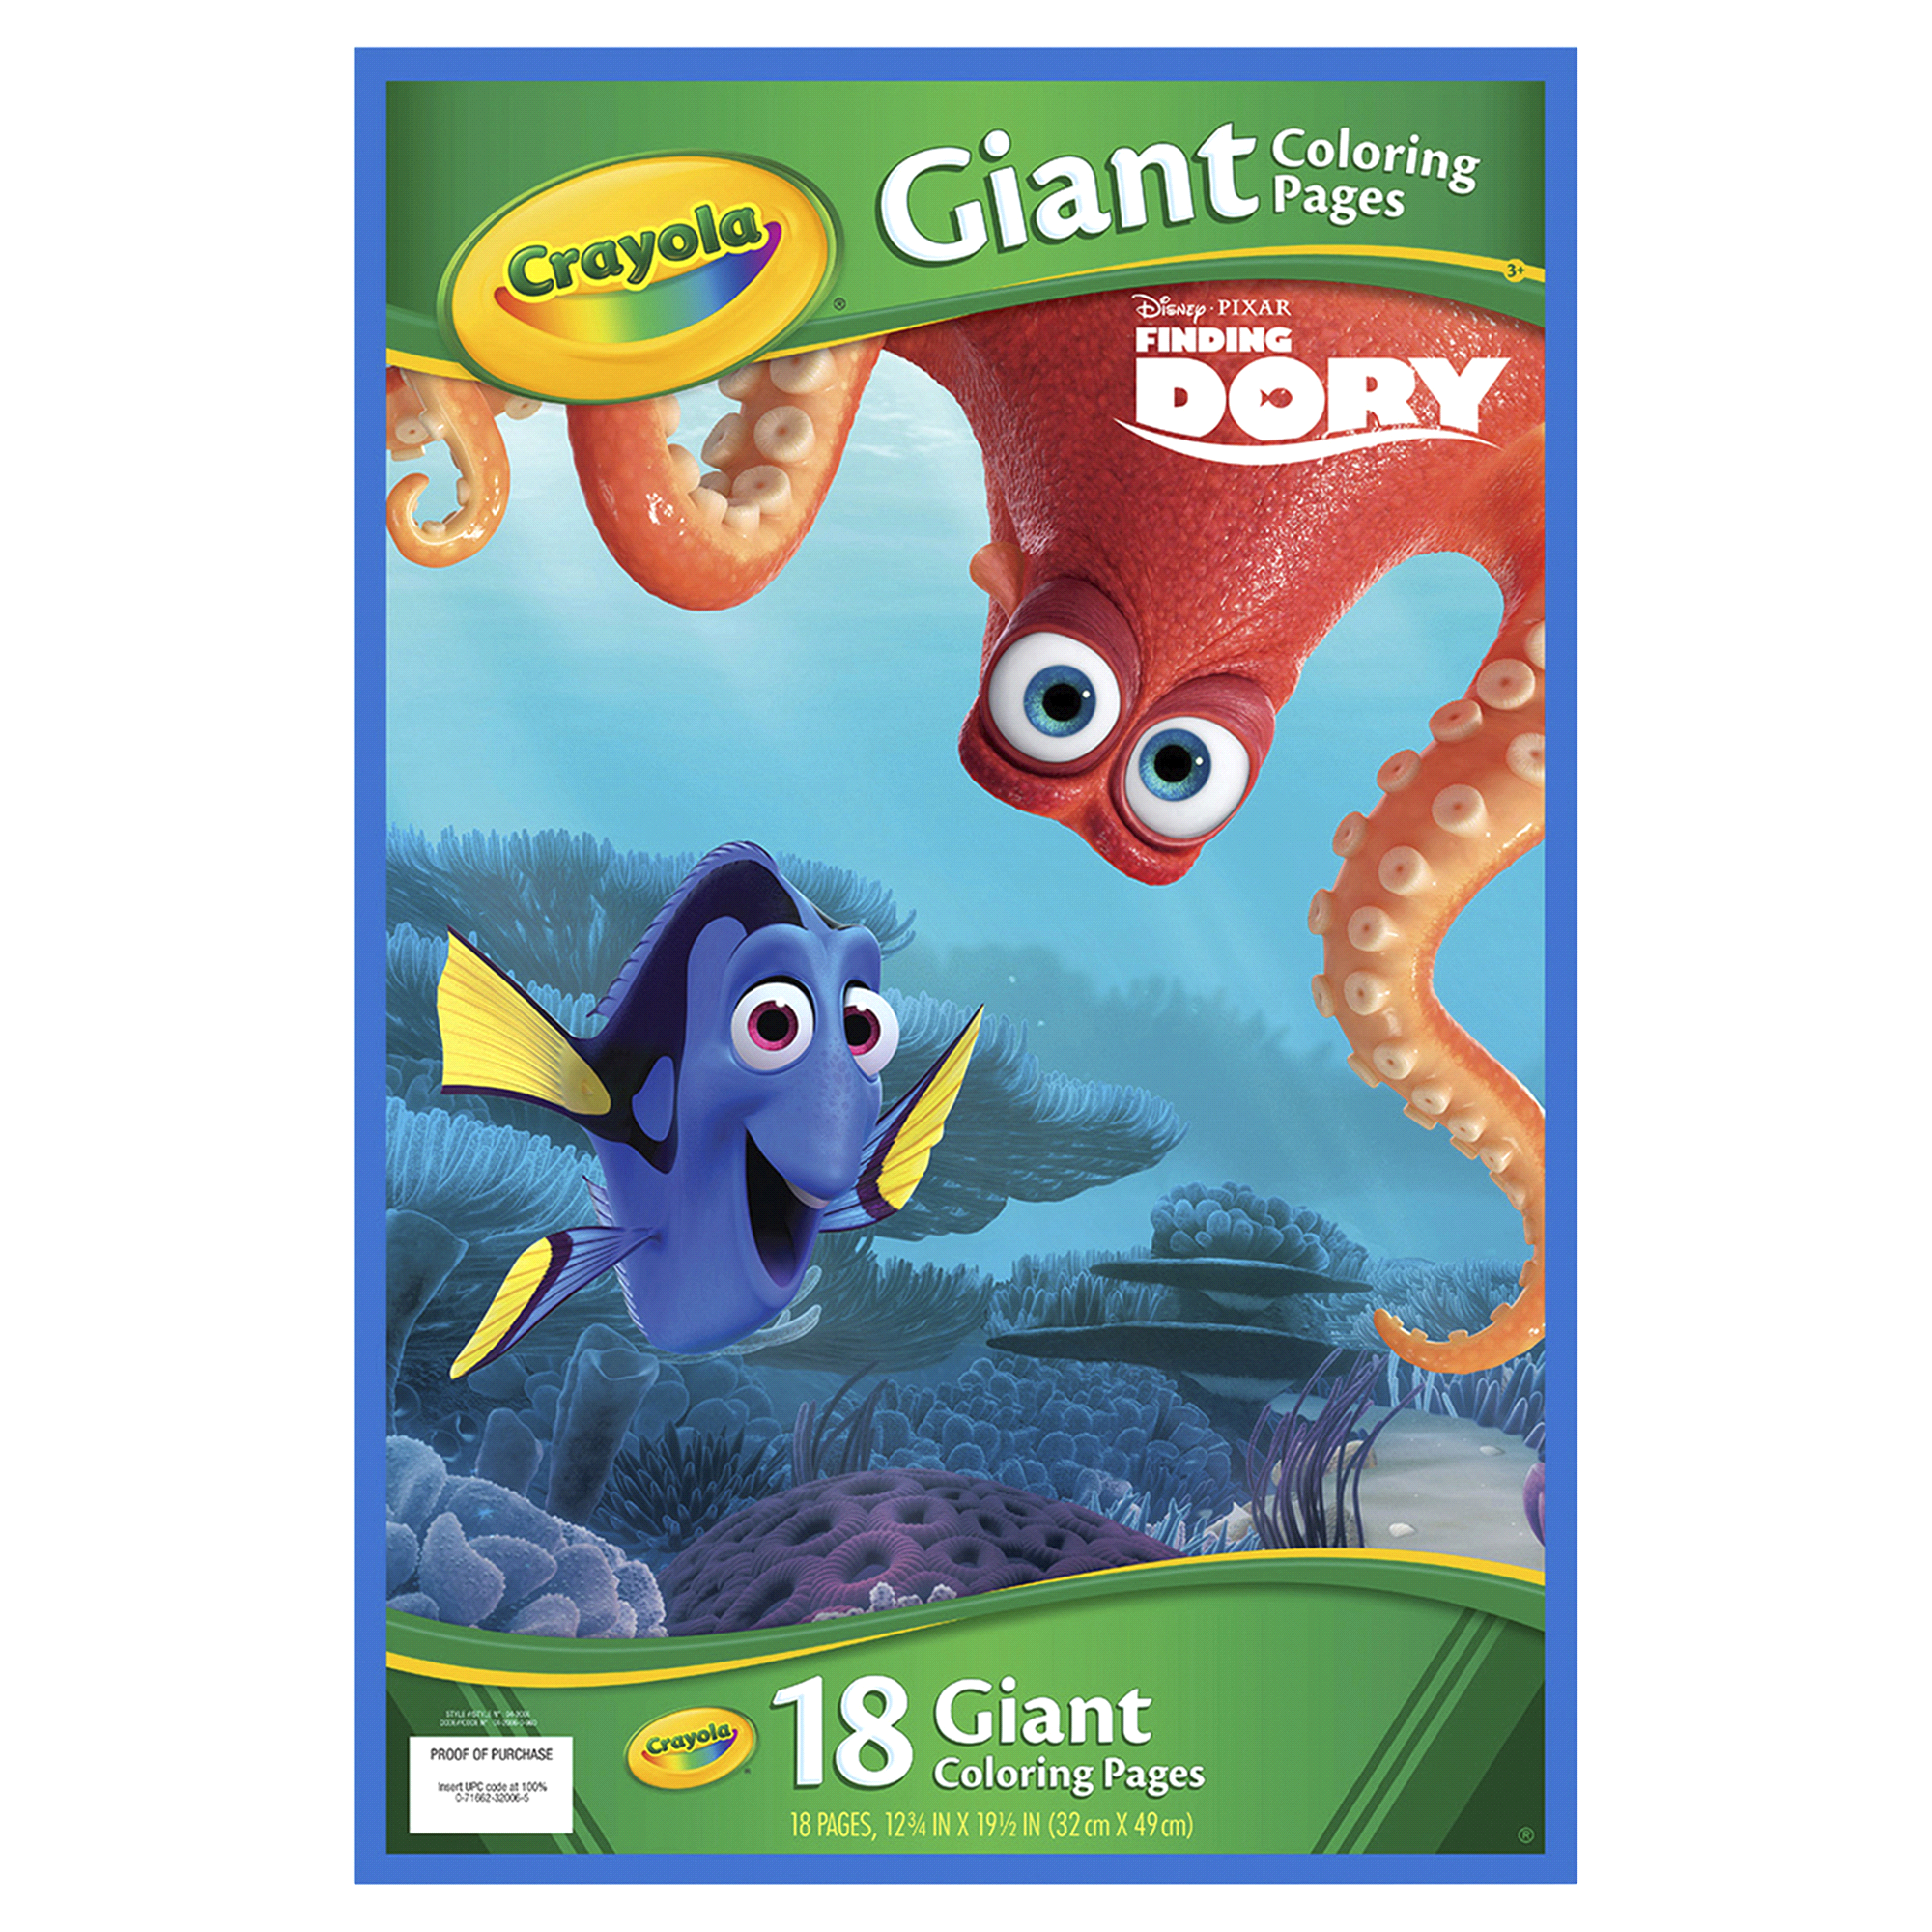 Crayola Finding Dory Giant Coloring Pages | Meijer.com